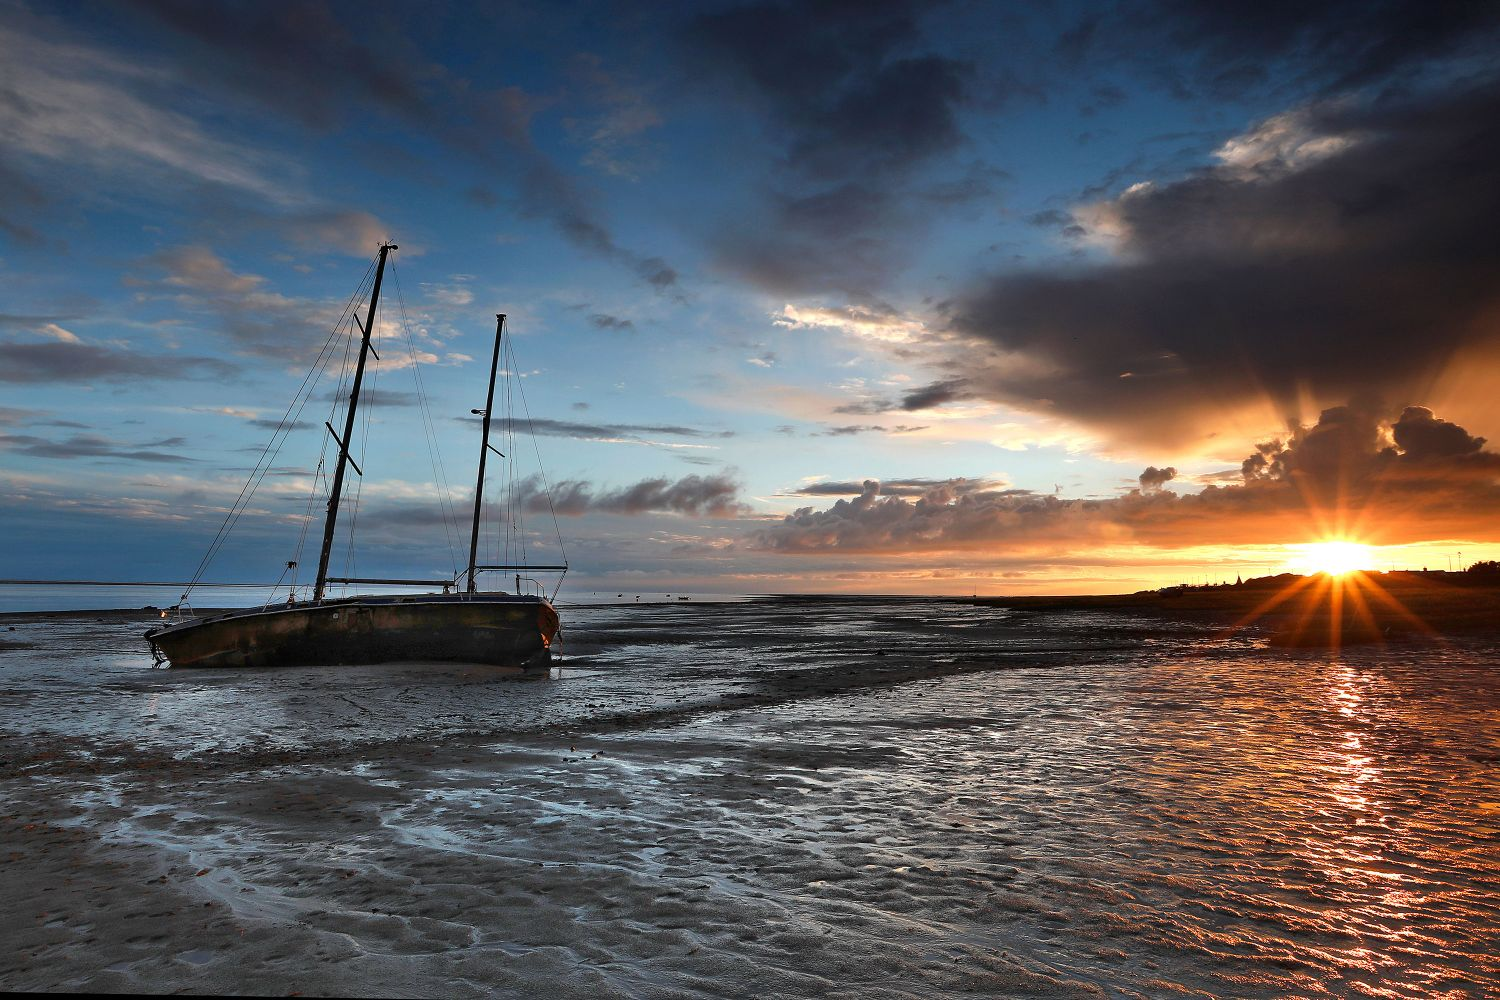 Sunset over the beached yacht at Lytham by Martin Lawrence